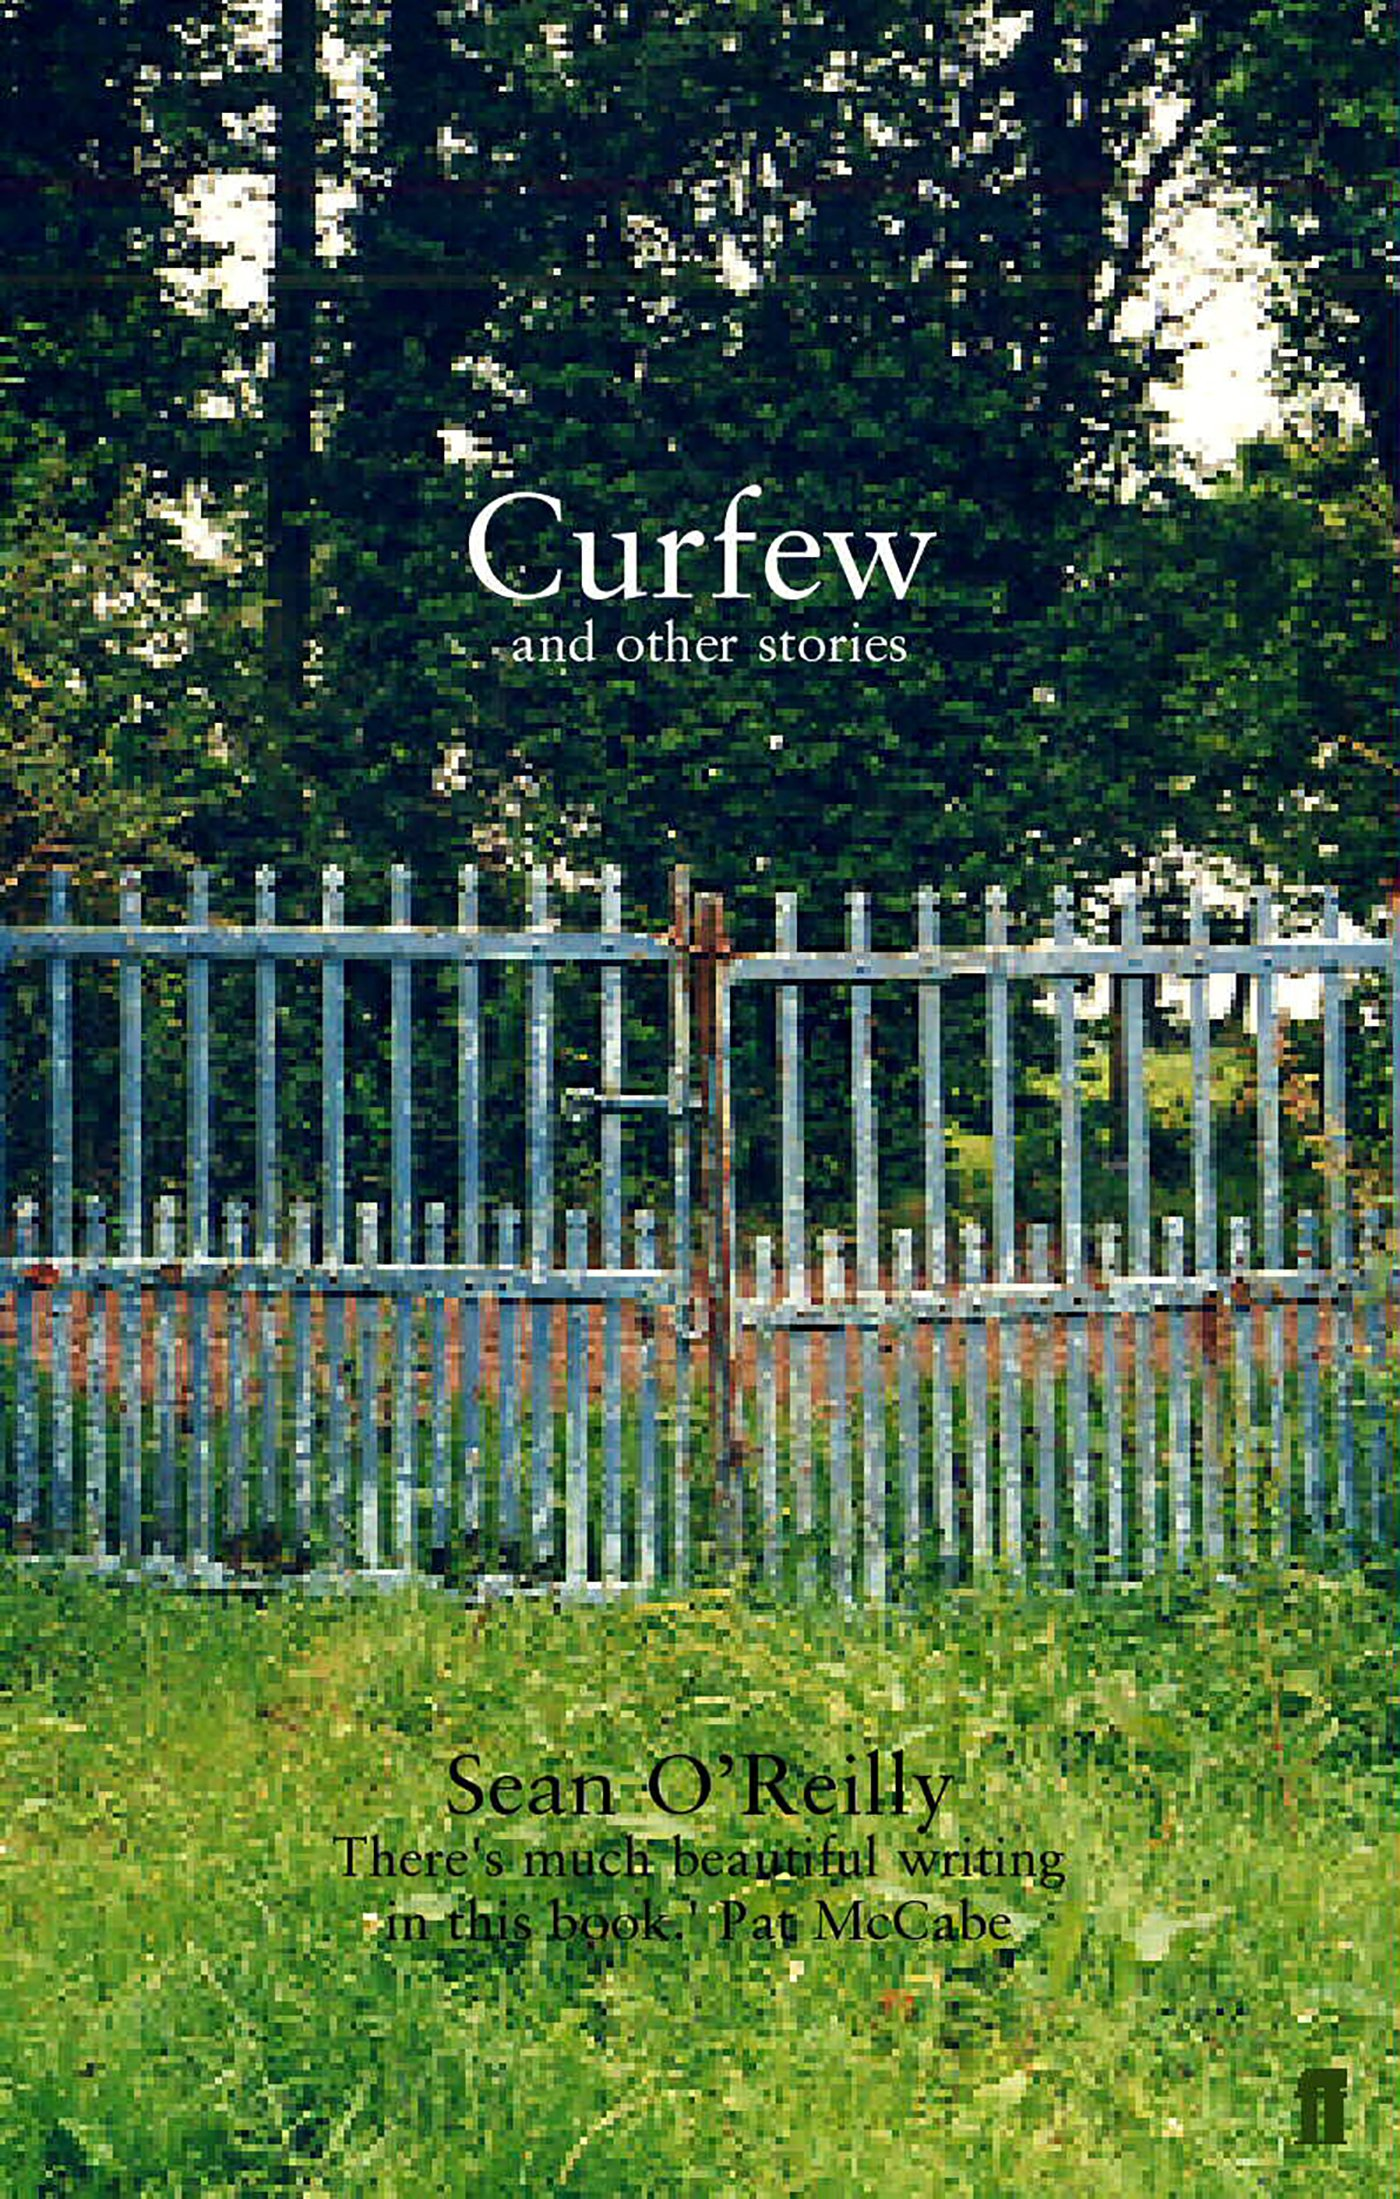 Download Curfew and Other Stories ePub fb2 ebook